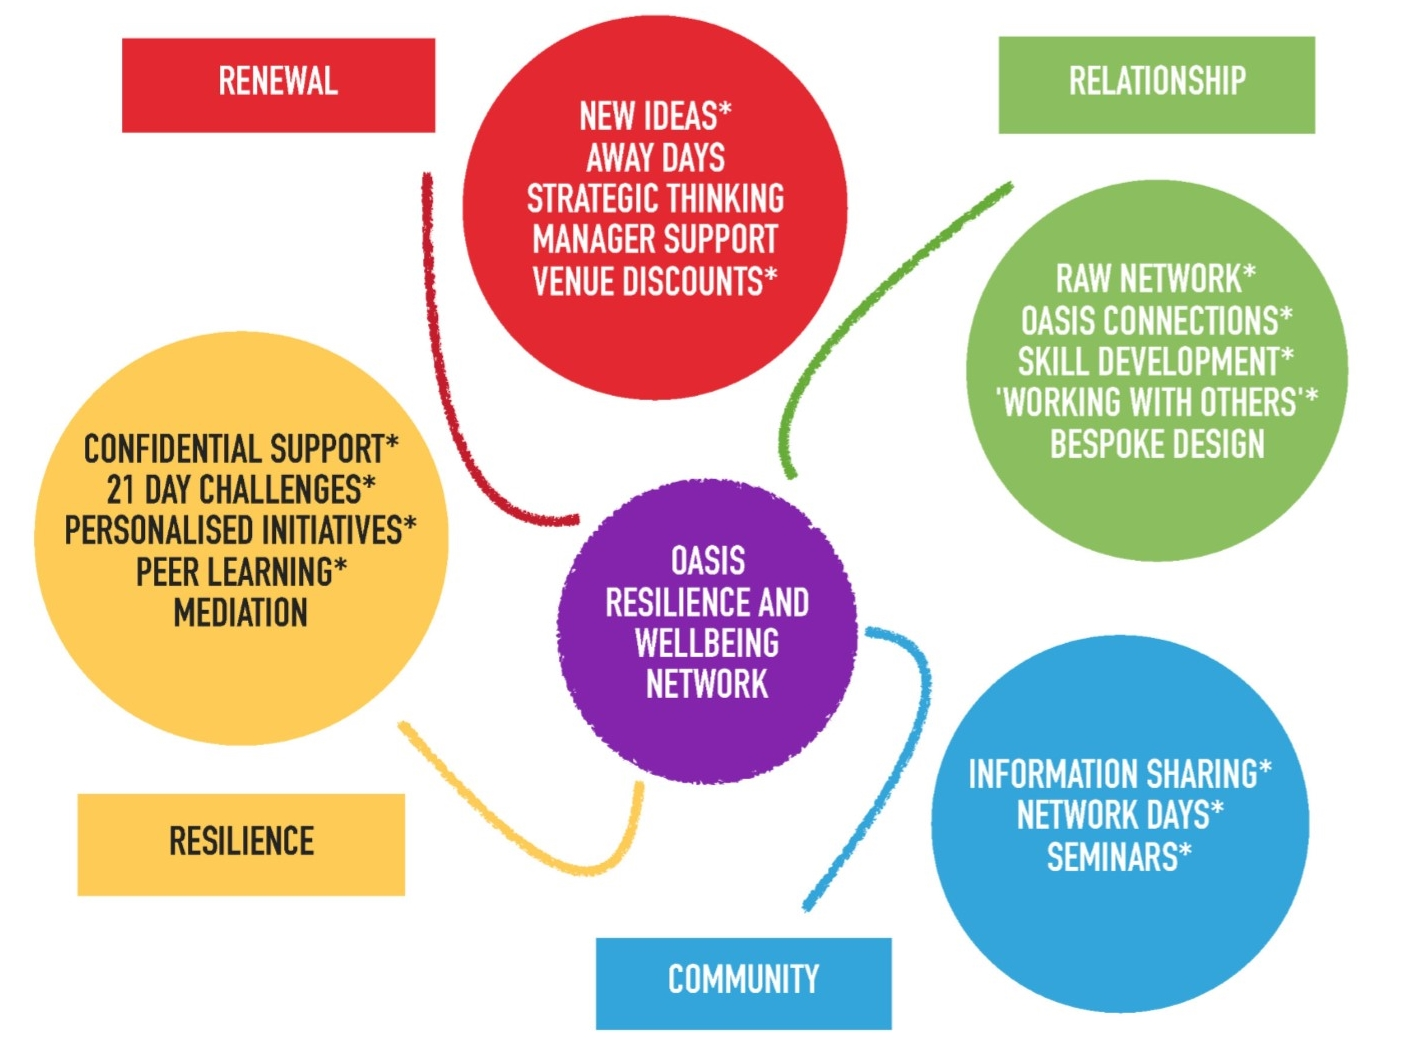 Resilience And Wellbeing Network Oasis Human Relations